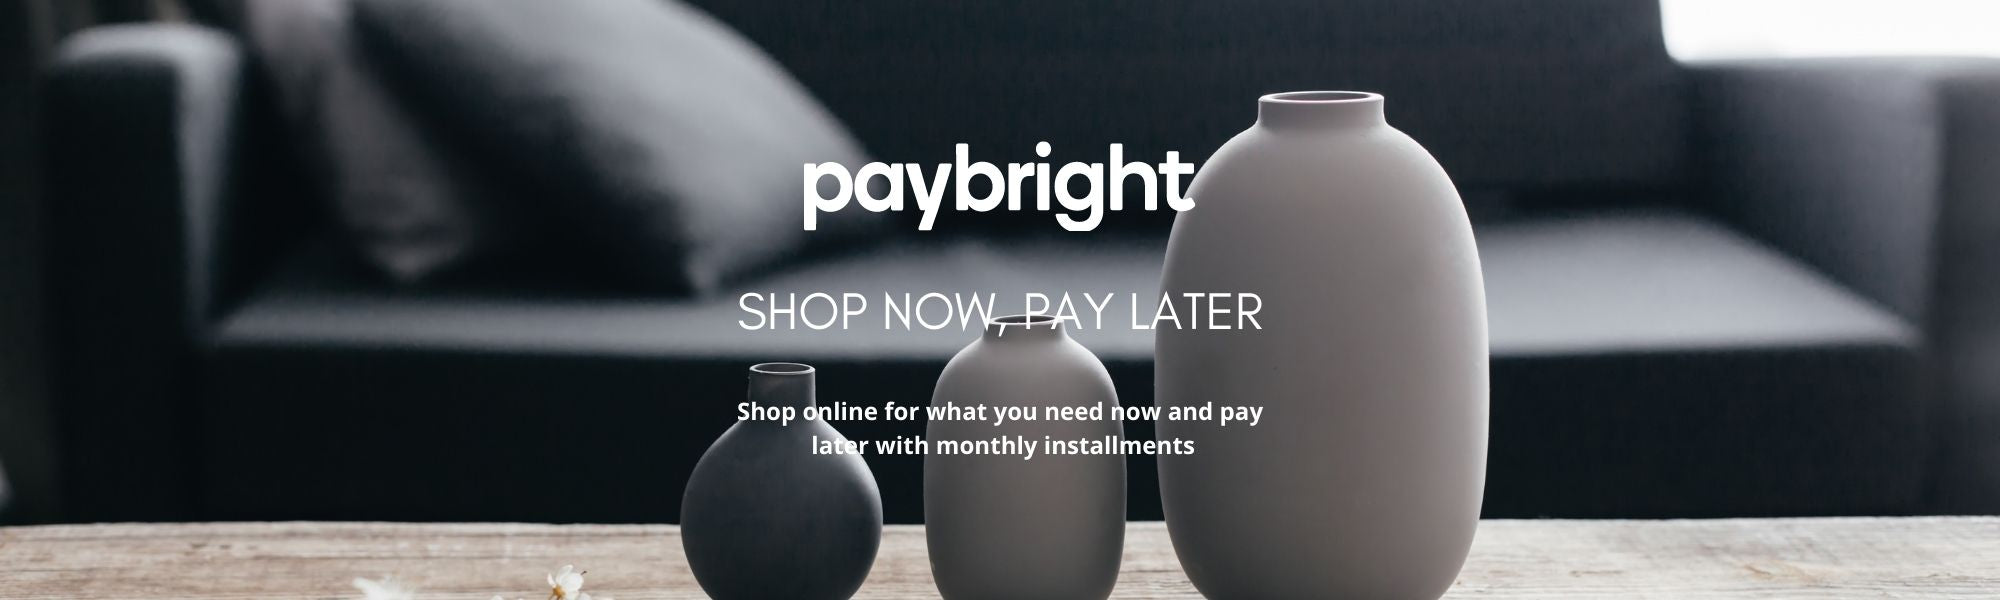 Paybright Shop Now,Pay Later